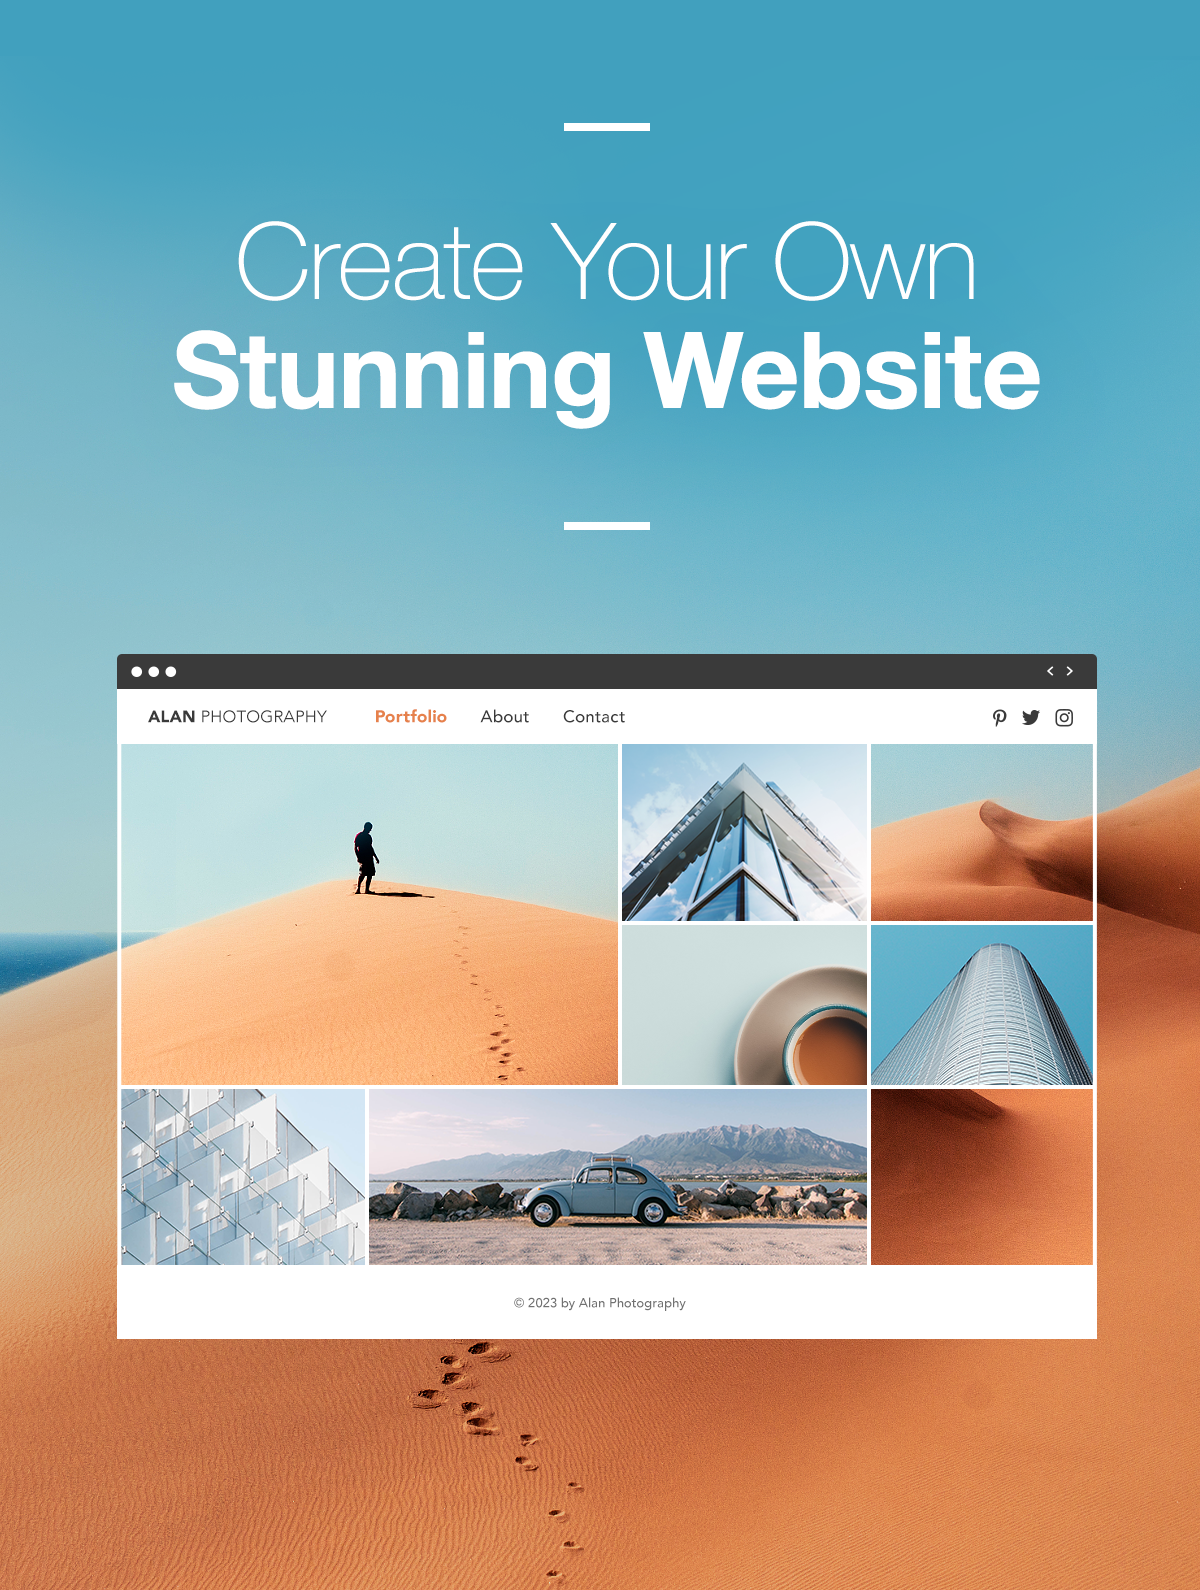 You can create your own professional website just like